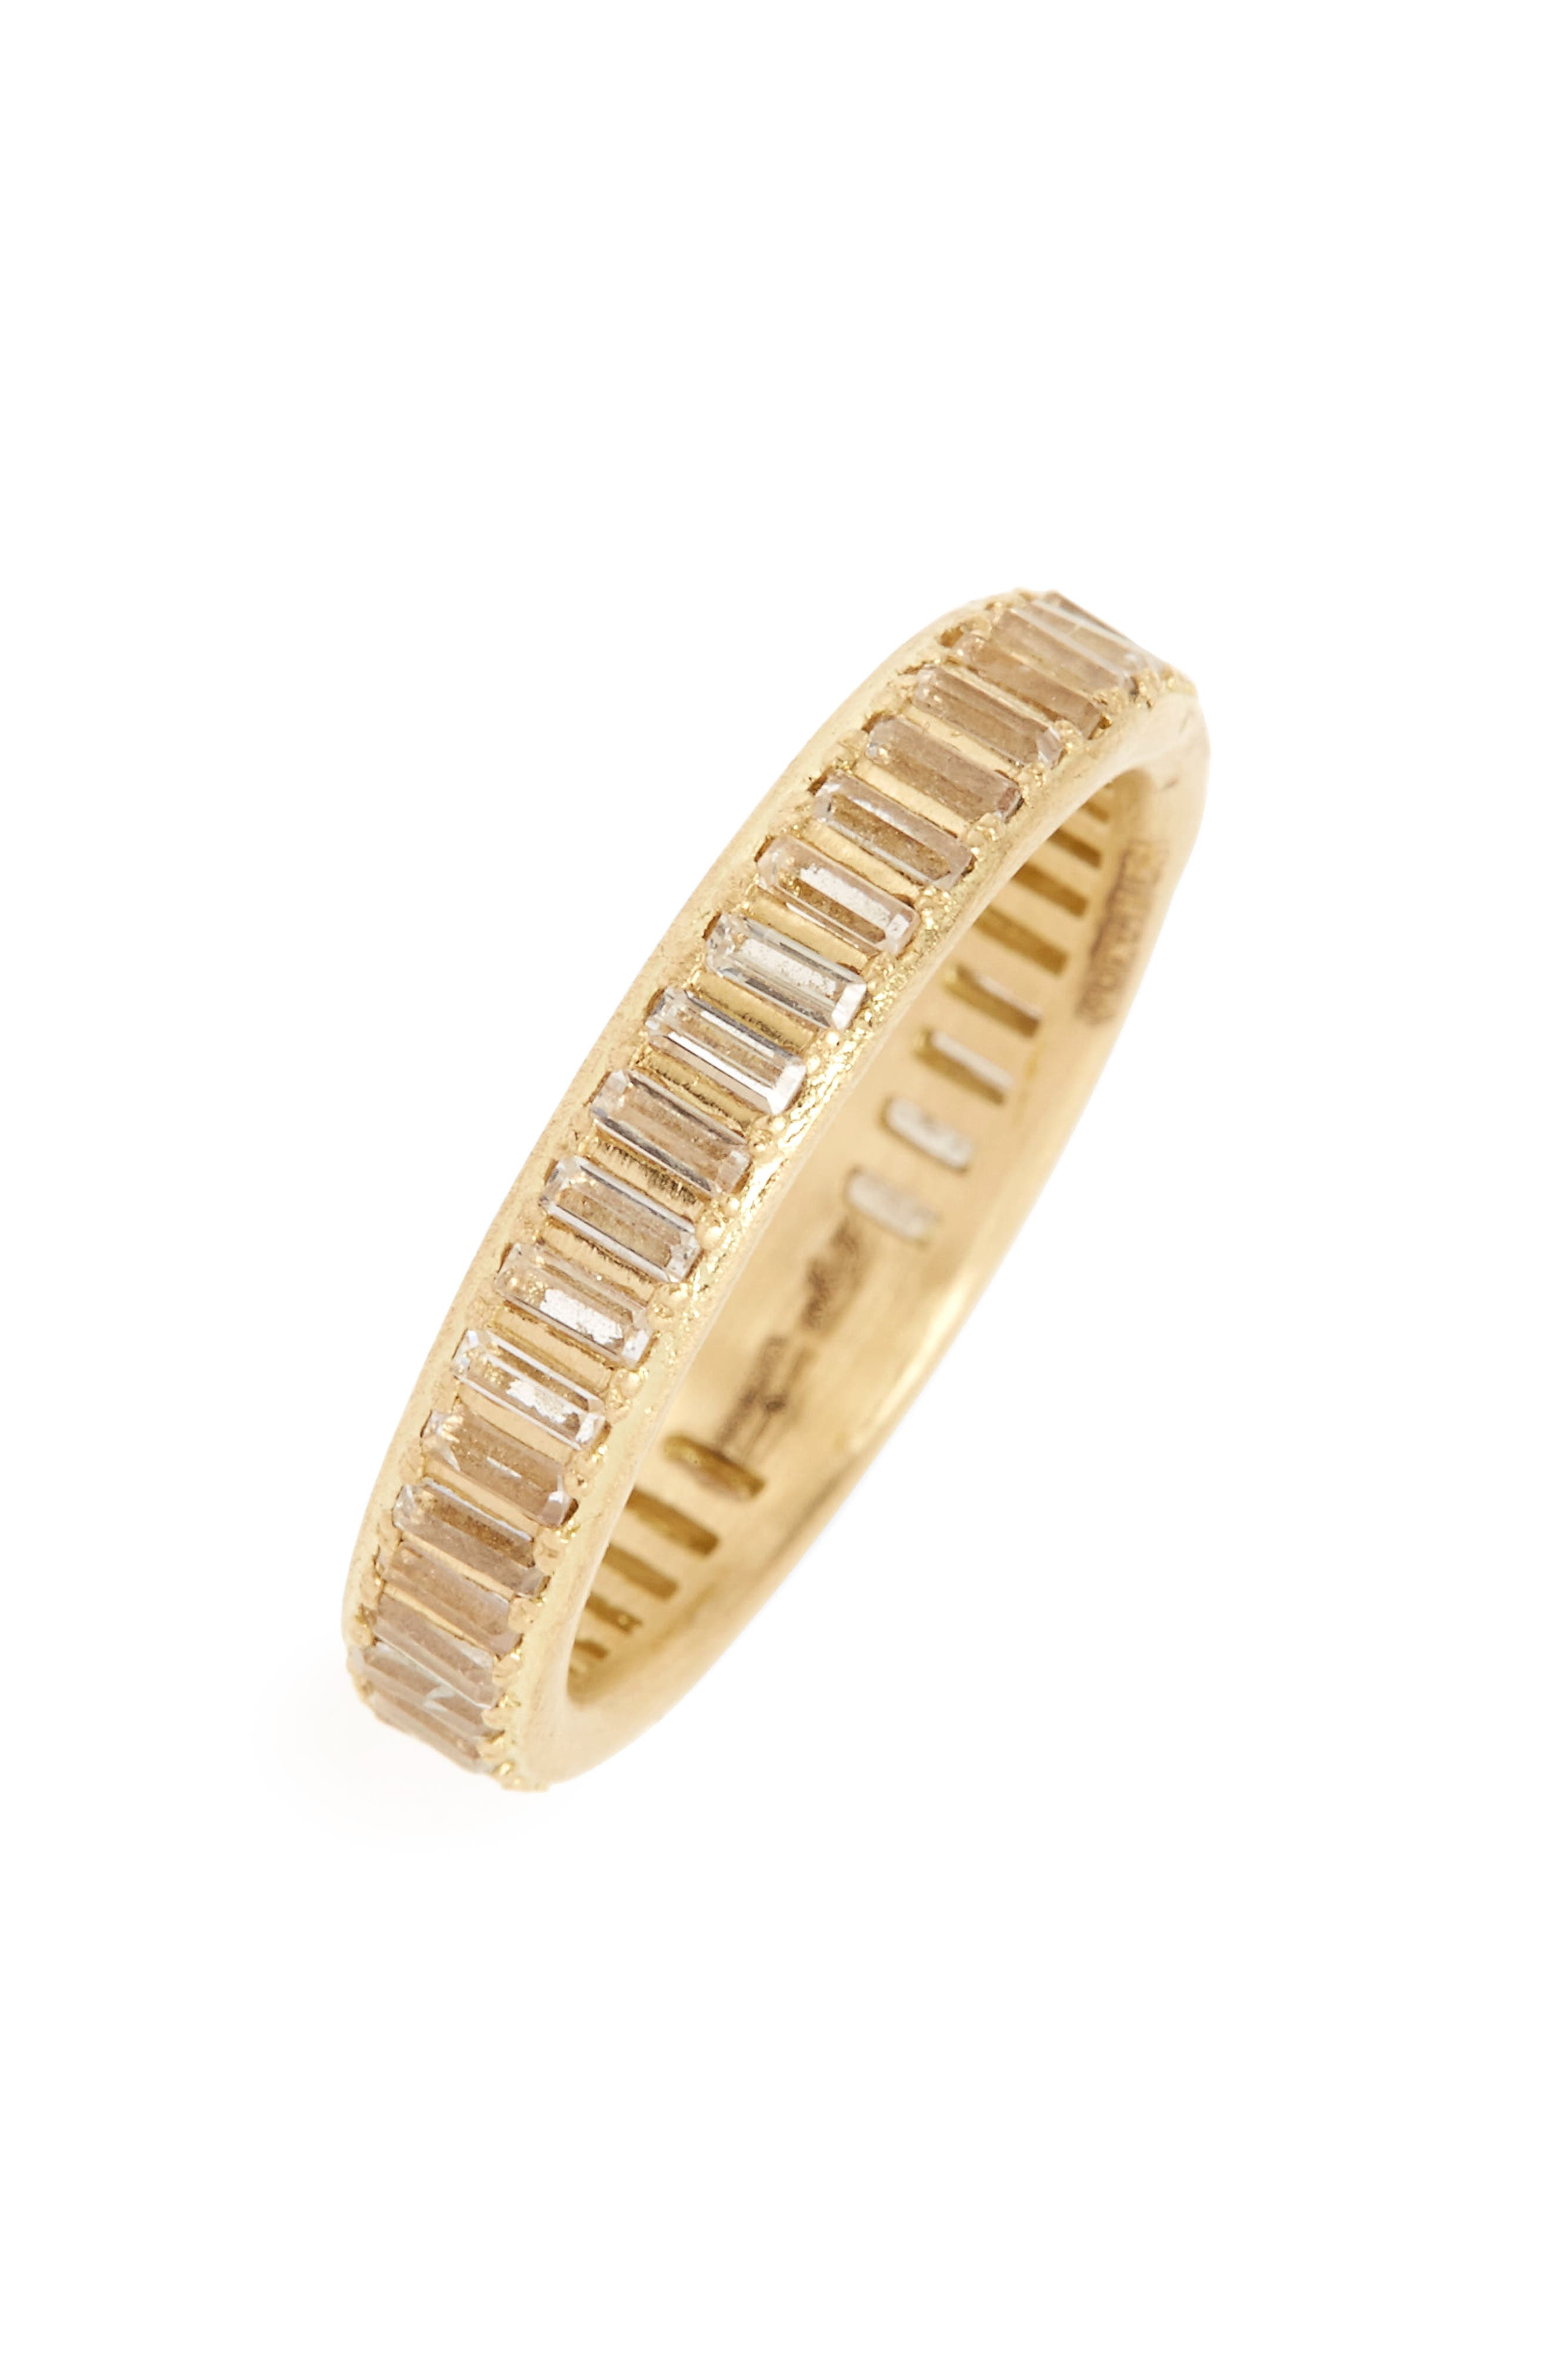 Sueño Sapphire Band Ring,                         Main,                         color, GOLD